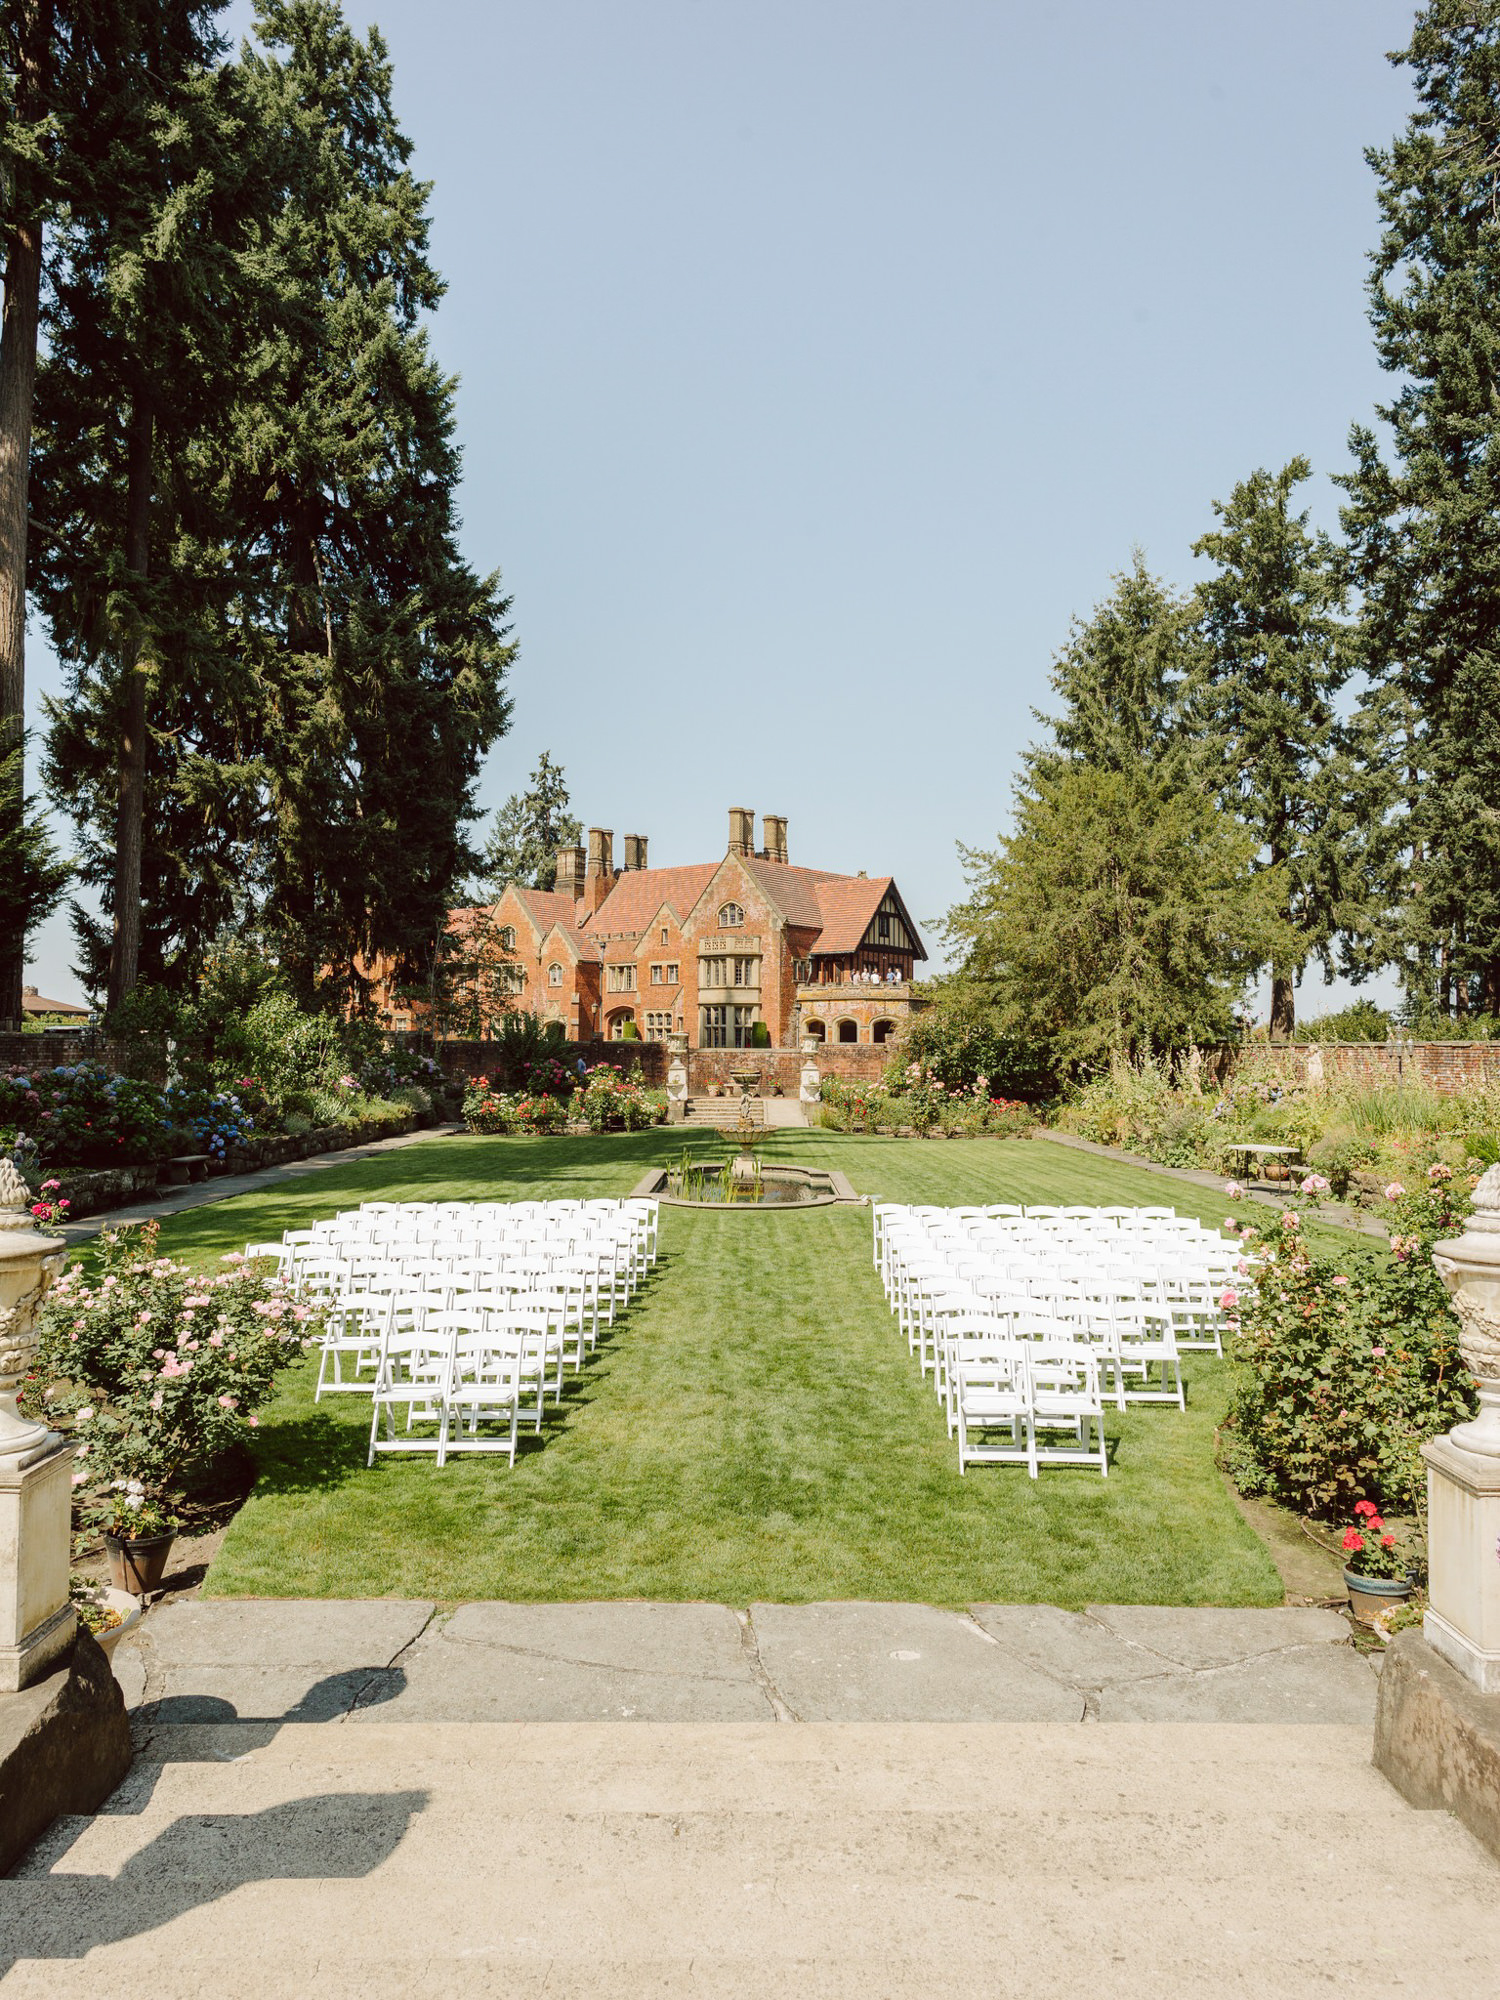 Ceremony decor at Thornewood Castle in Lakewood, photo by Benj Haisch